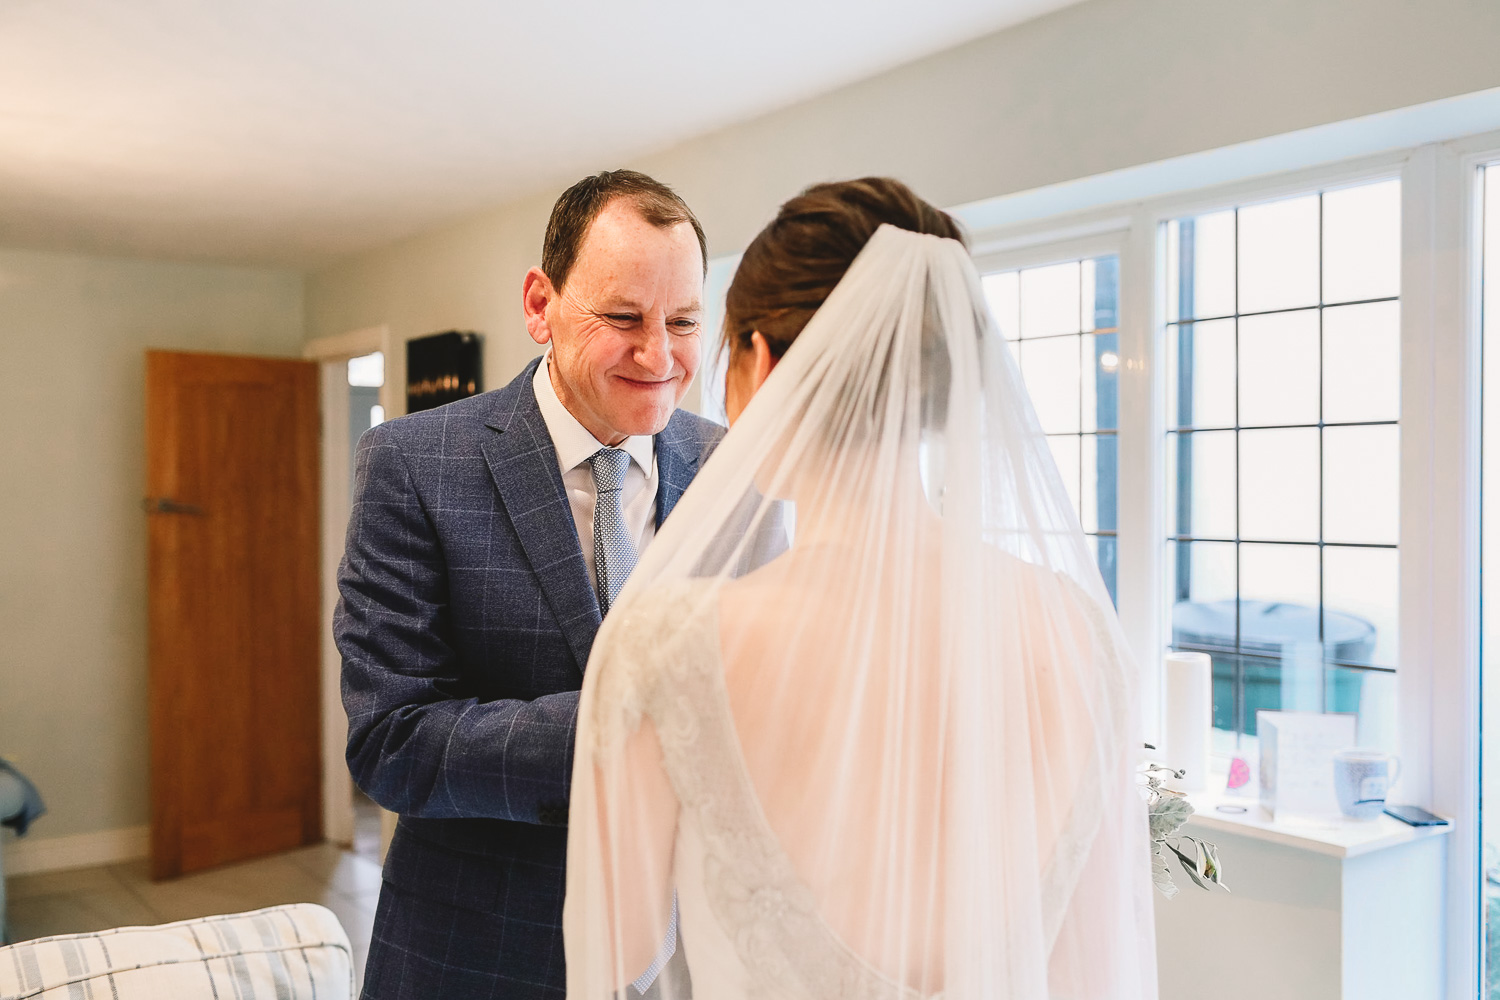 Dad approaches bride and holds her hands in his and has the happiest look on his face during bridal prep at relaxed Sheffield wedding